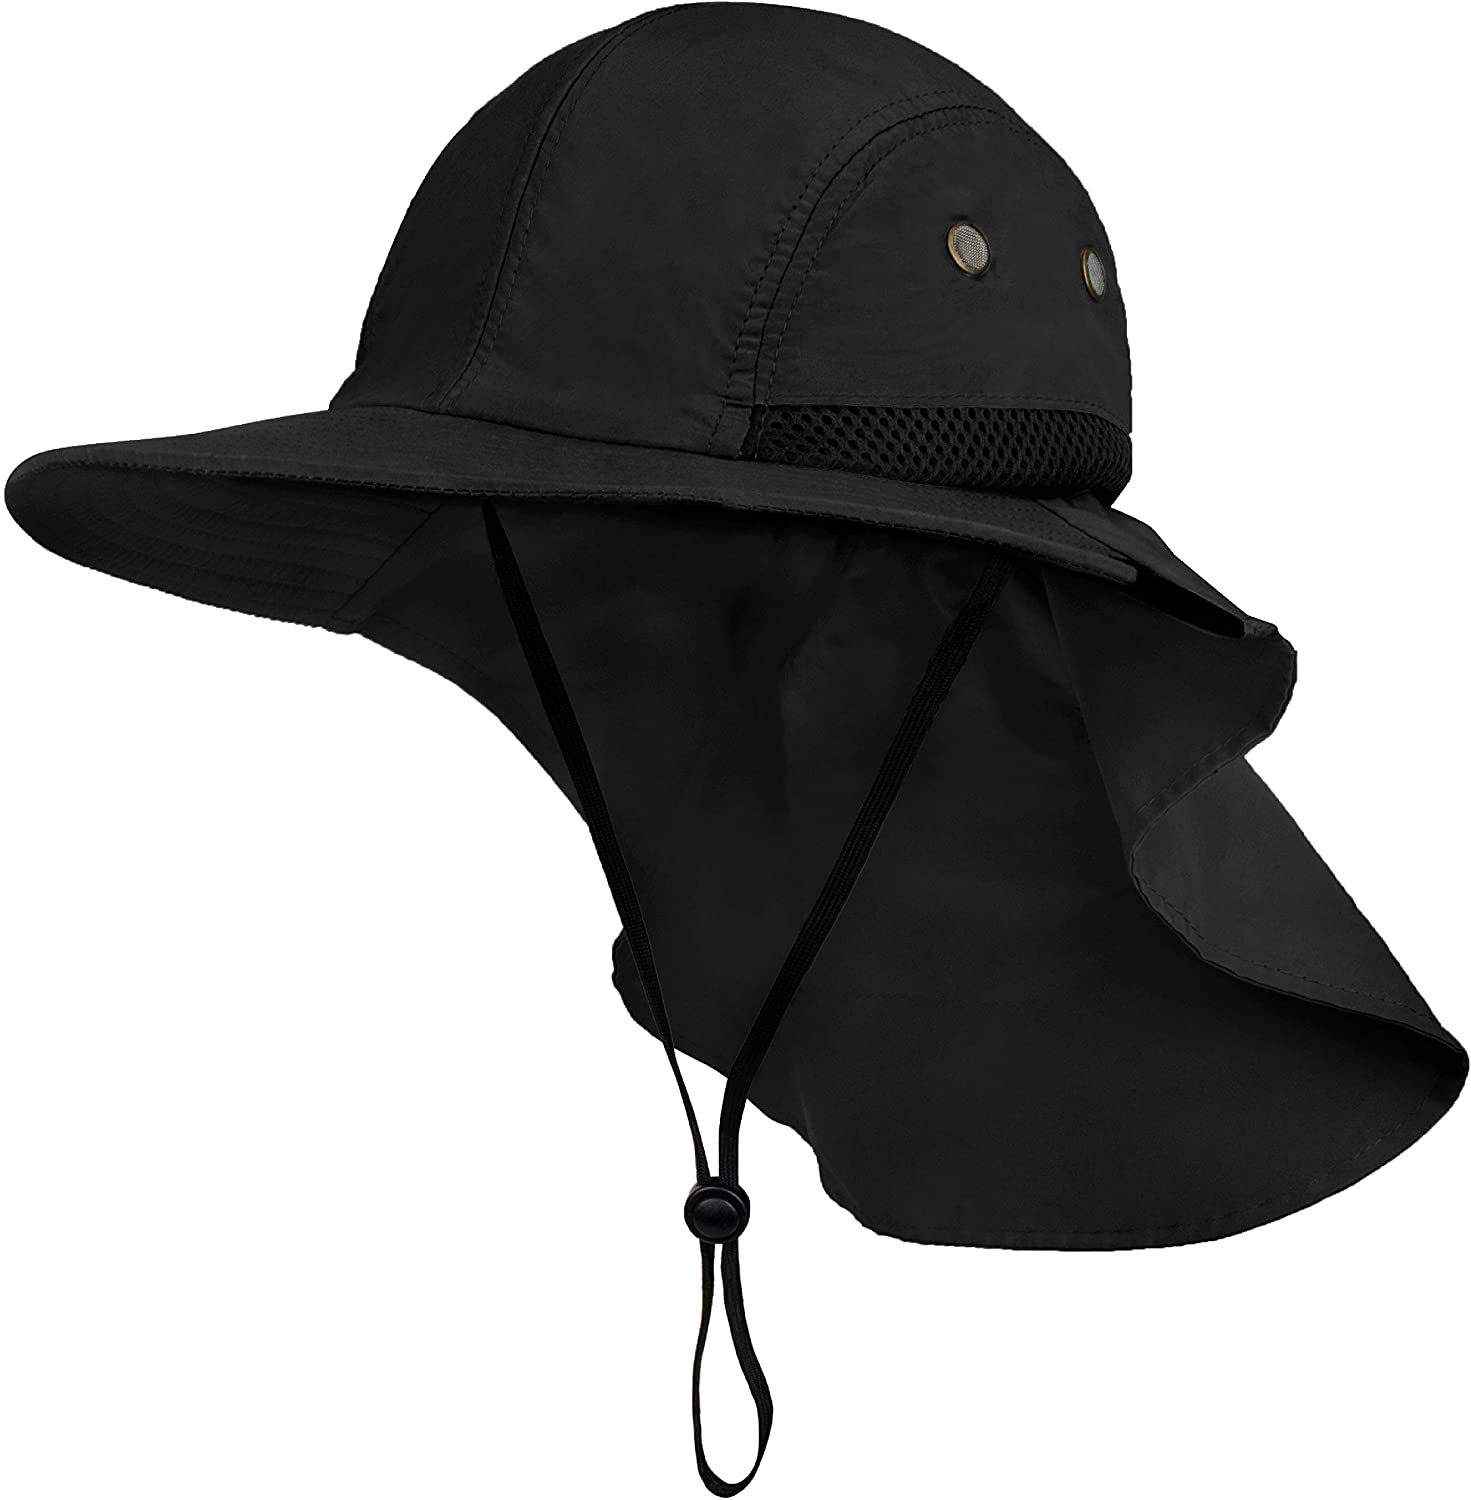 Unisex Fisherman Hat Solid Color Sun Protection Cap Fashion Bucket Hat Foldable Outdoors Sport Headgear Fishing Camping Hiking Headwear